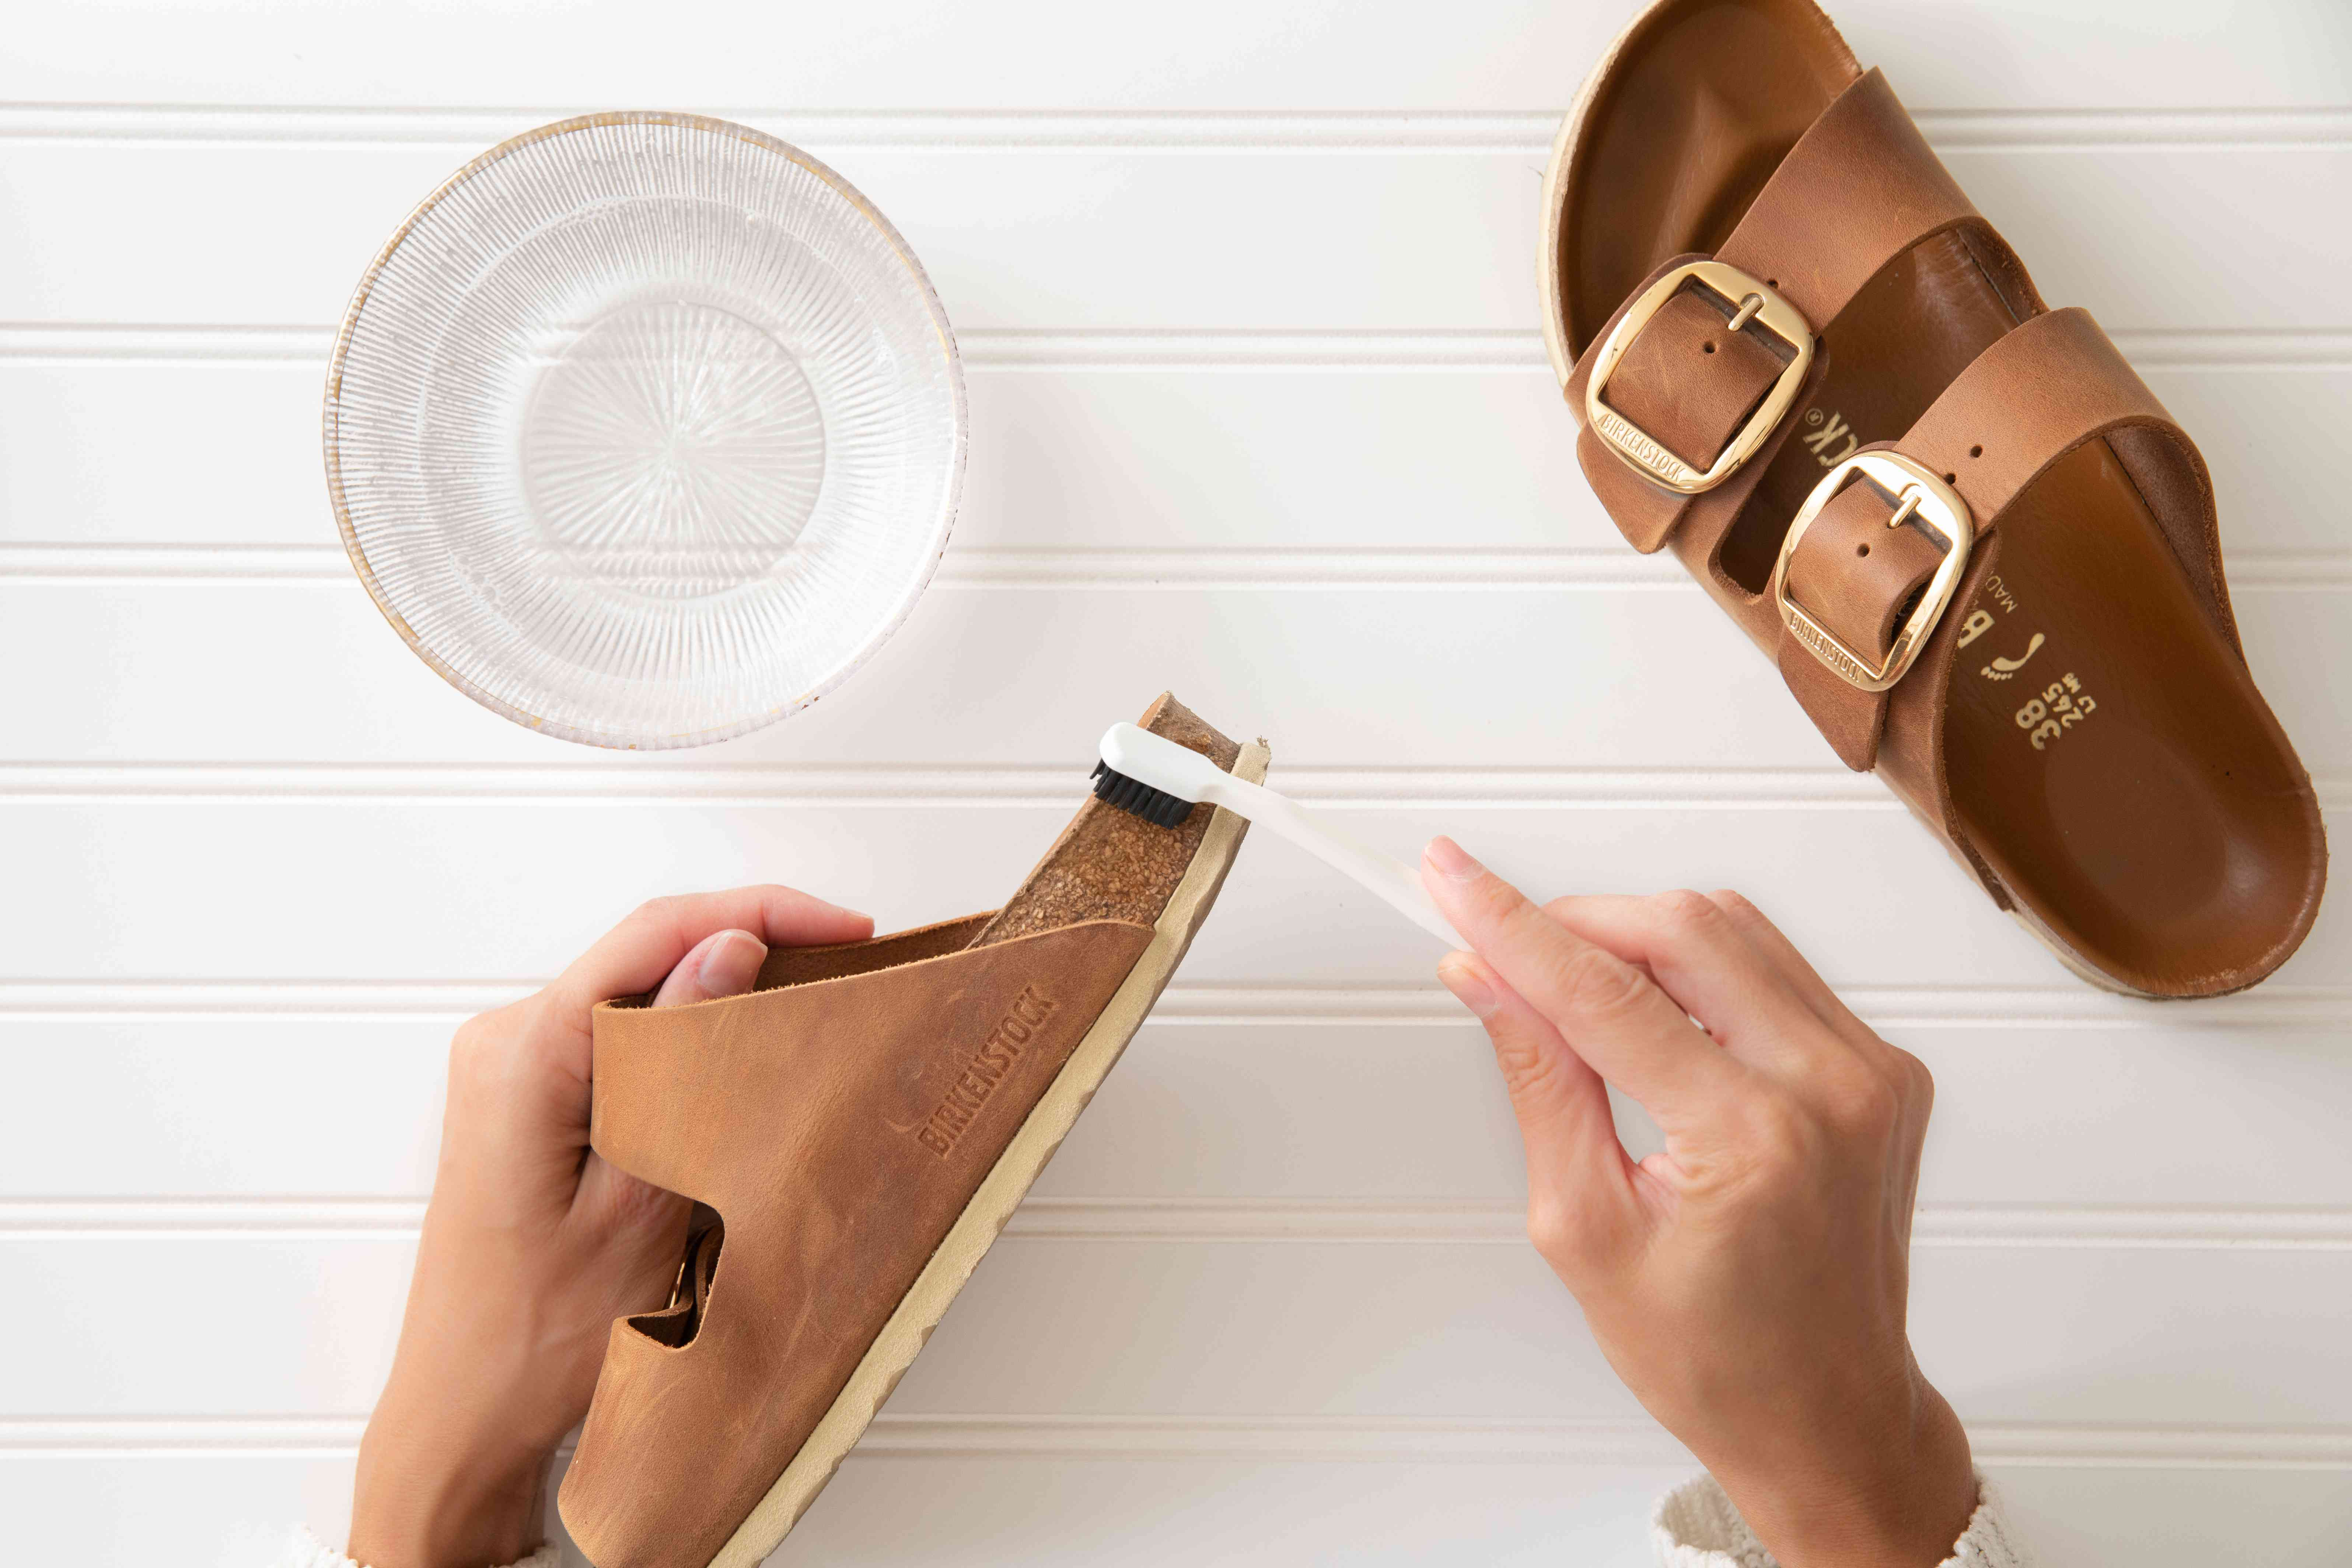 using an old toothbrush to gently scrub birkenstocks